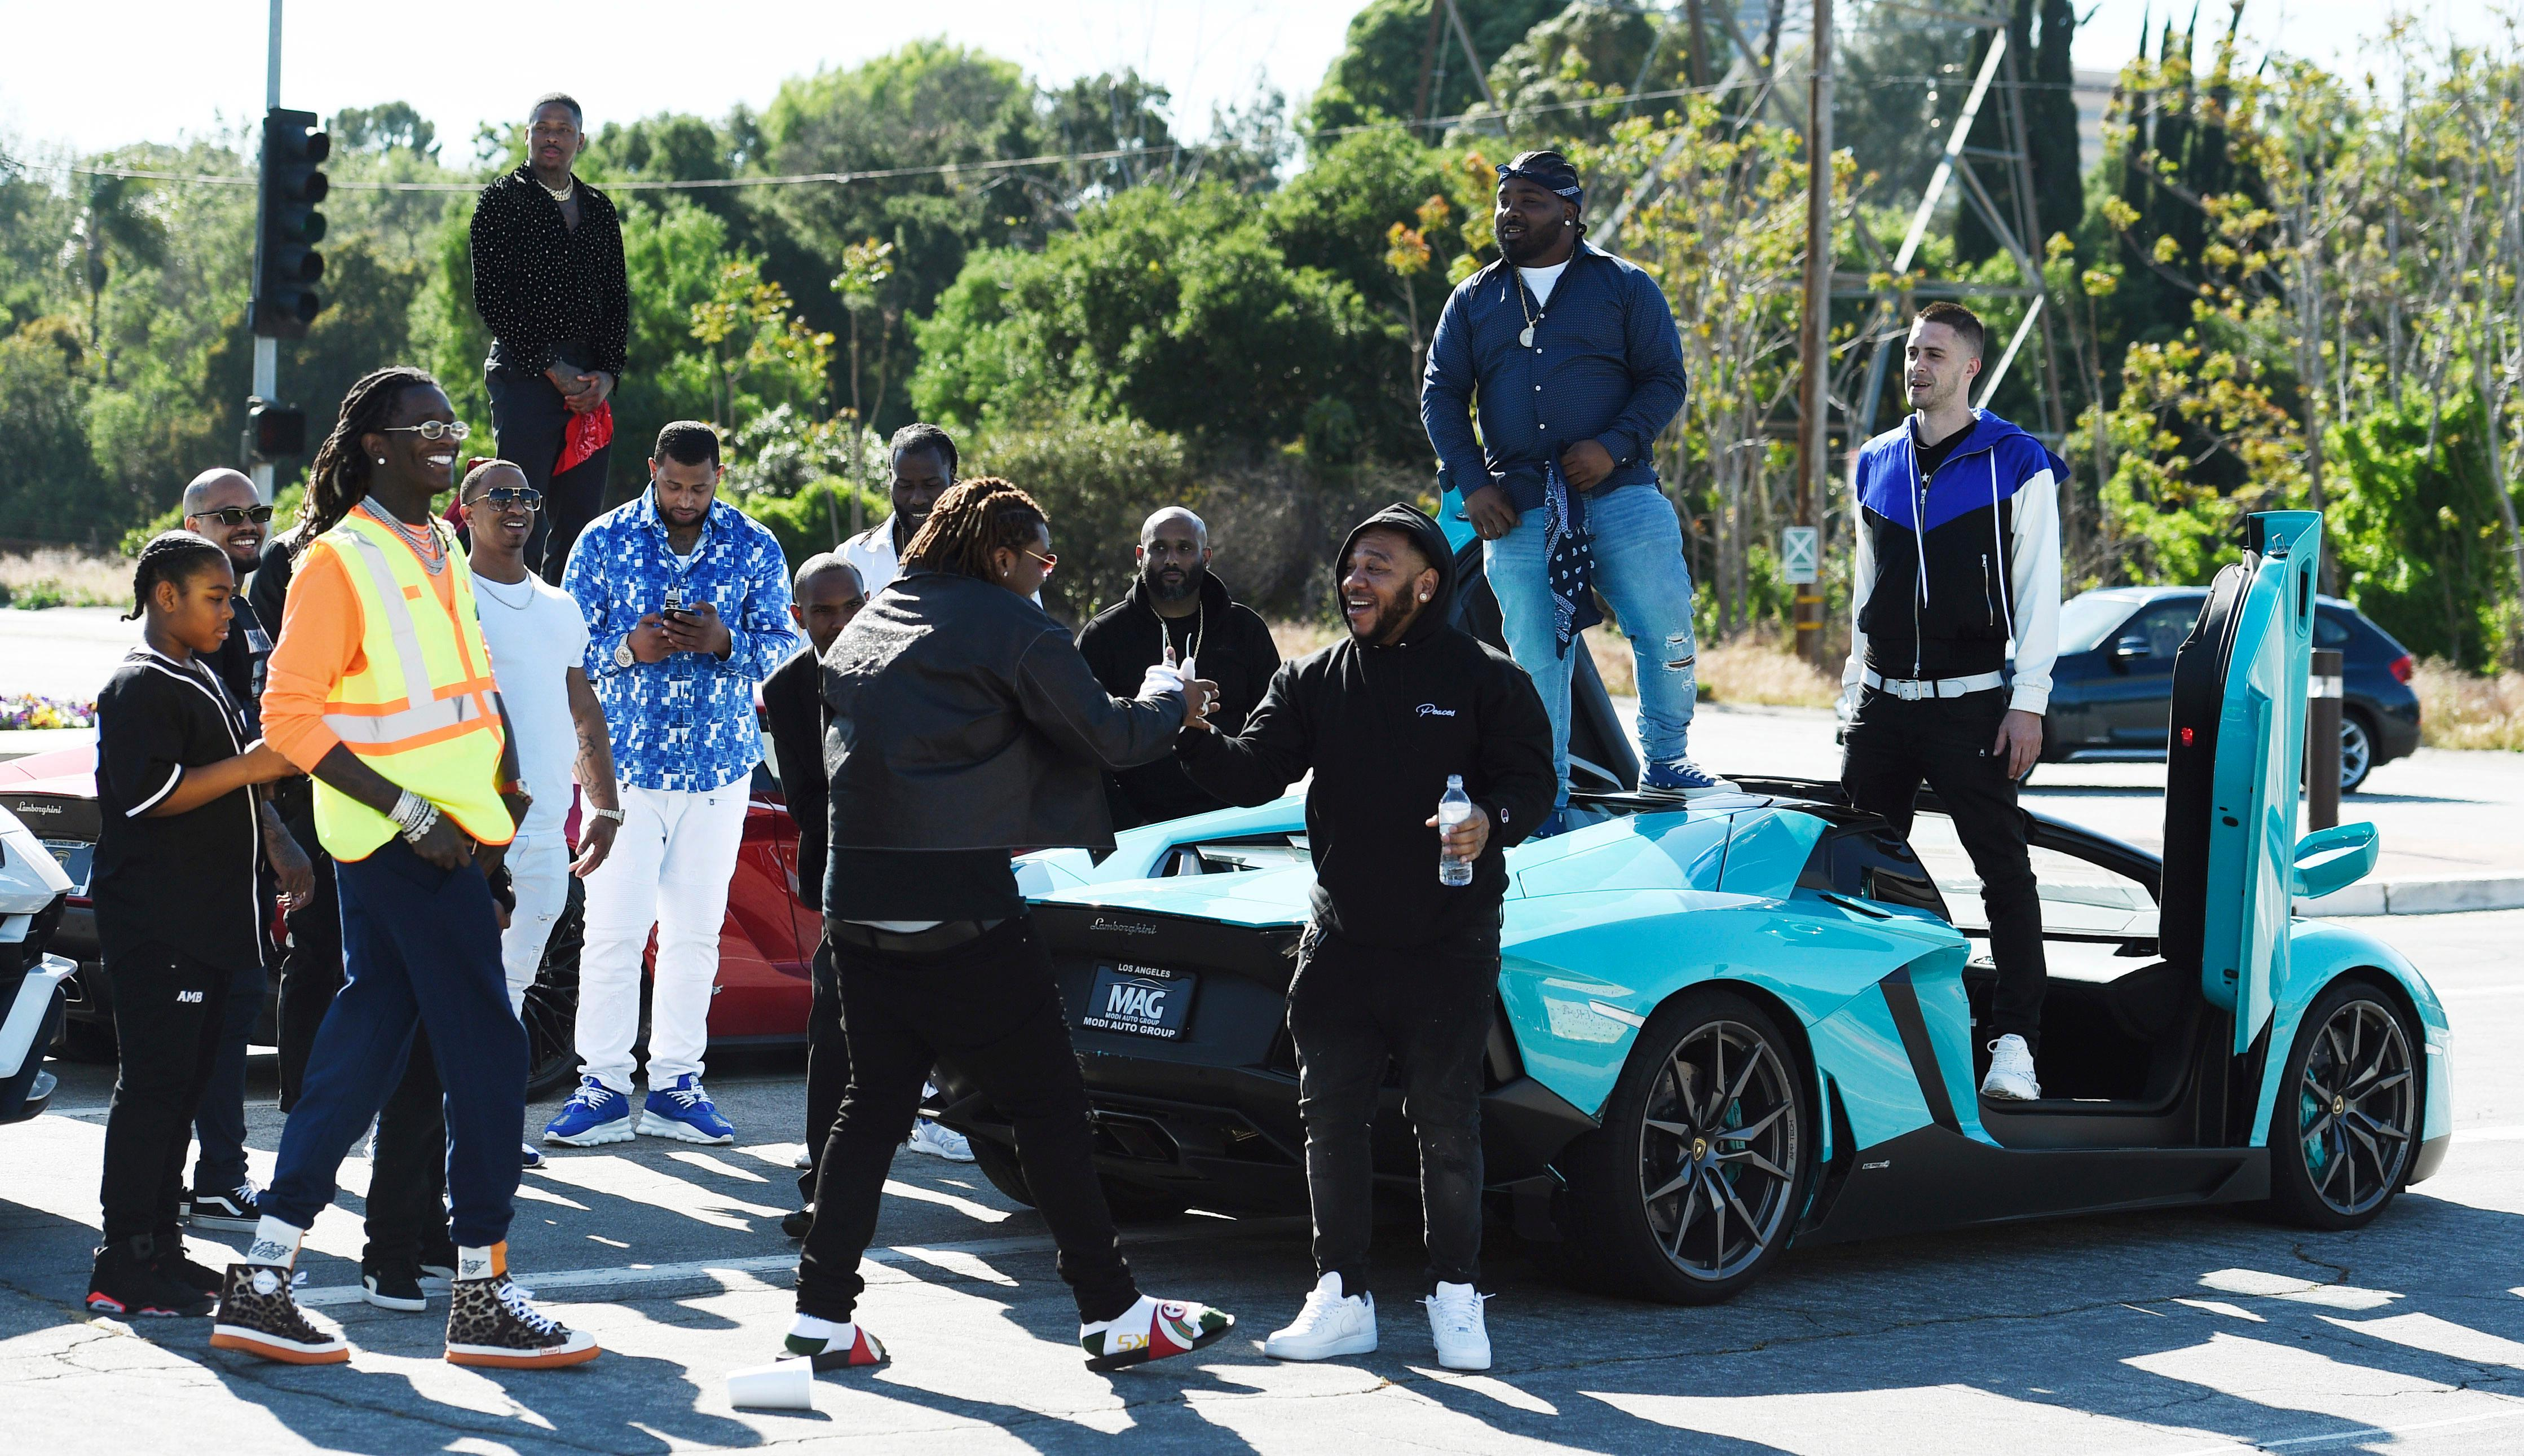 Attendees of a burial service for the late rapper Nipsey Hussle, including rapper YG, upper left holding bandana, gather together outside their cars before leaving Forest Lawn Hollywood Hills cemetery, Friday, April 12, 2019 in Los Angeles. (Photo by Chris Pizzello/Invision/AP)